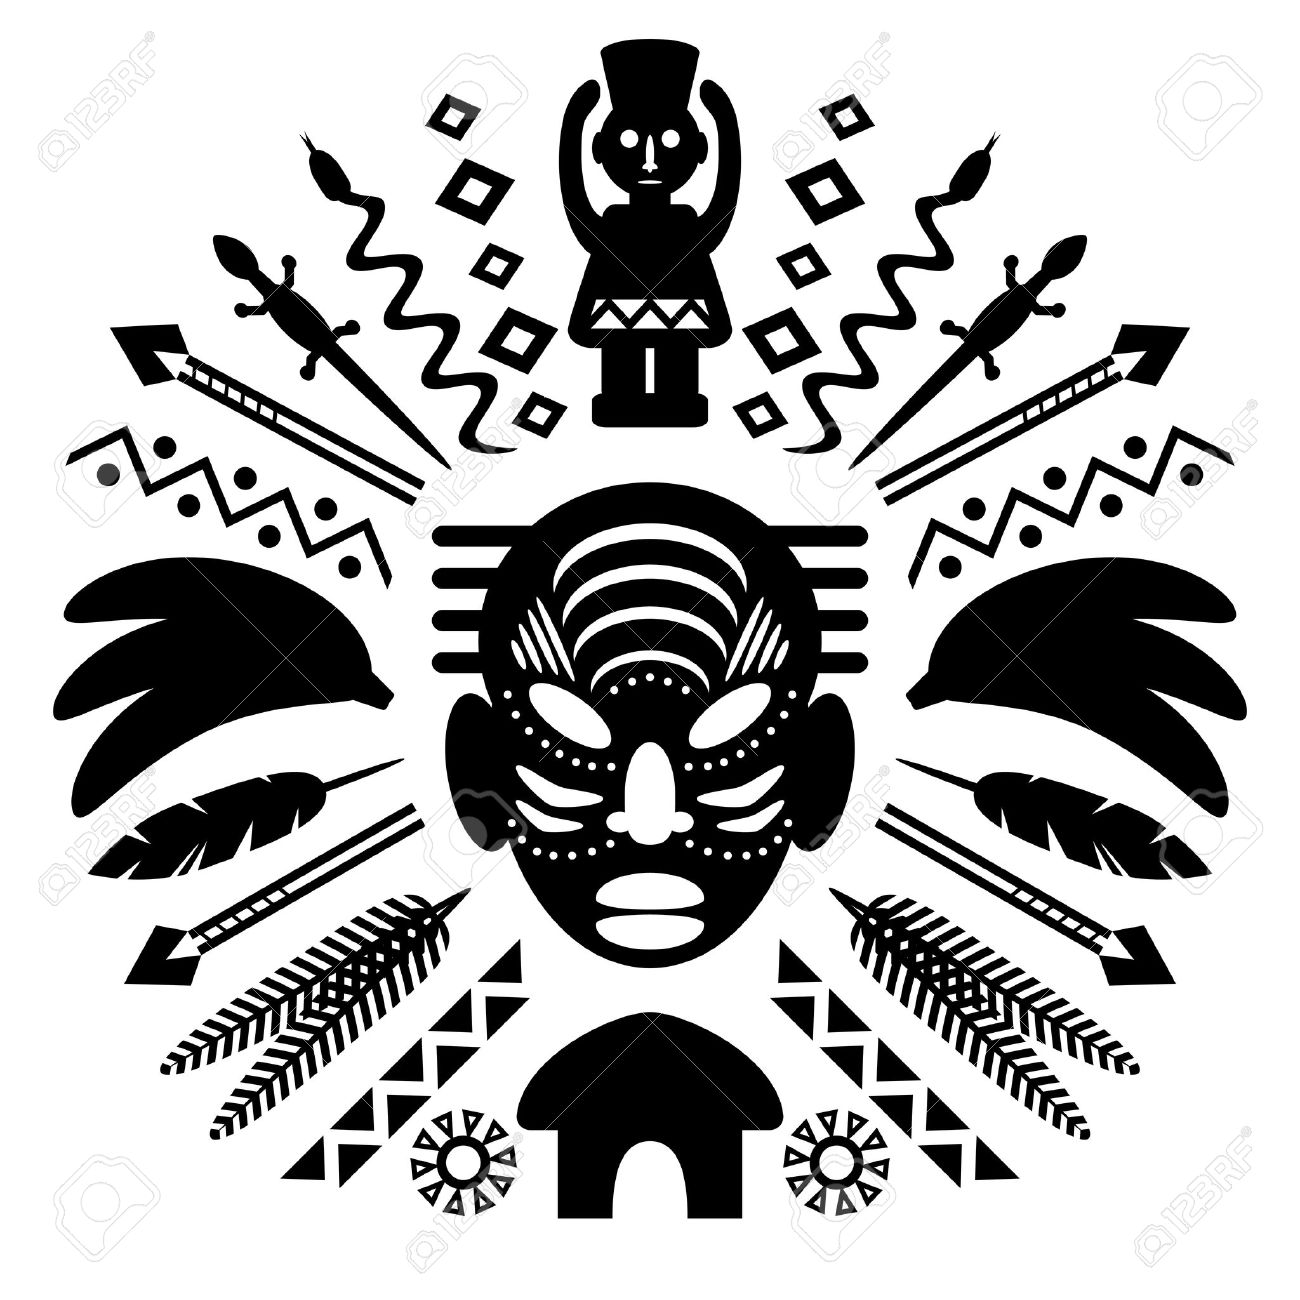 African Abstract Art Tribal Concept Illustration With Mask Animals